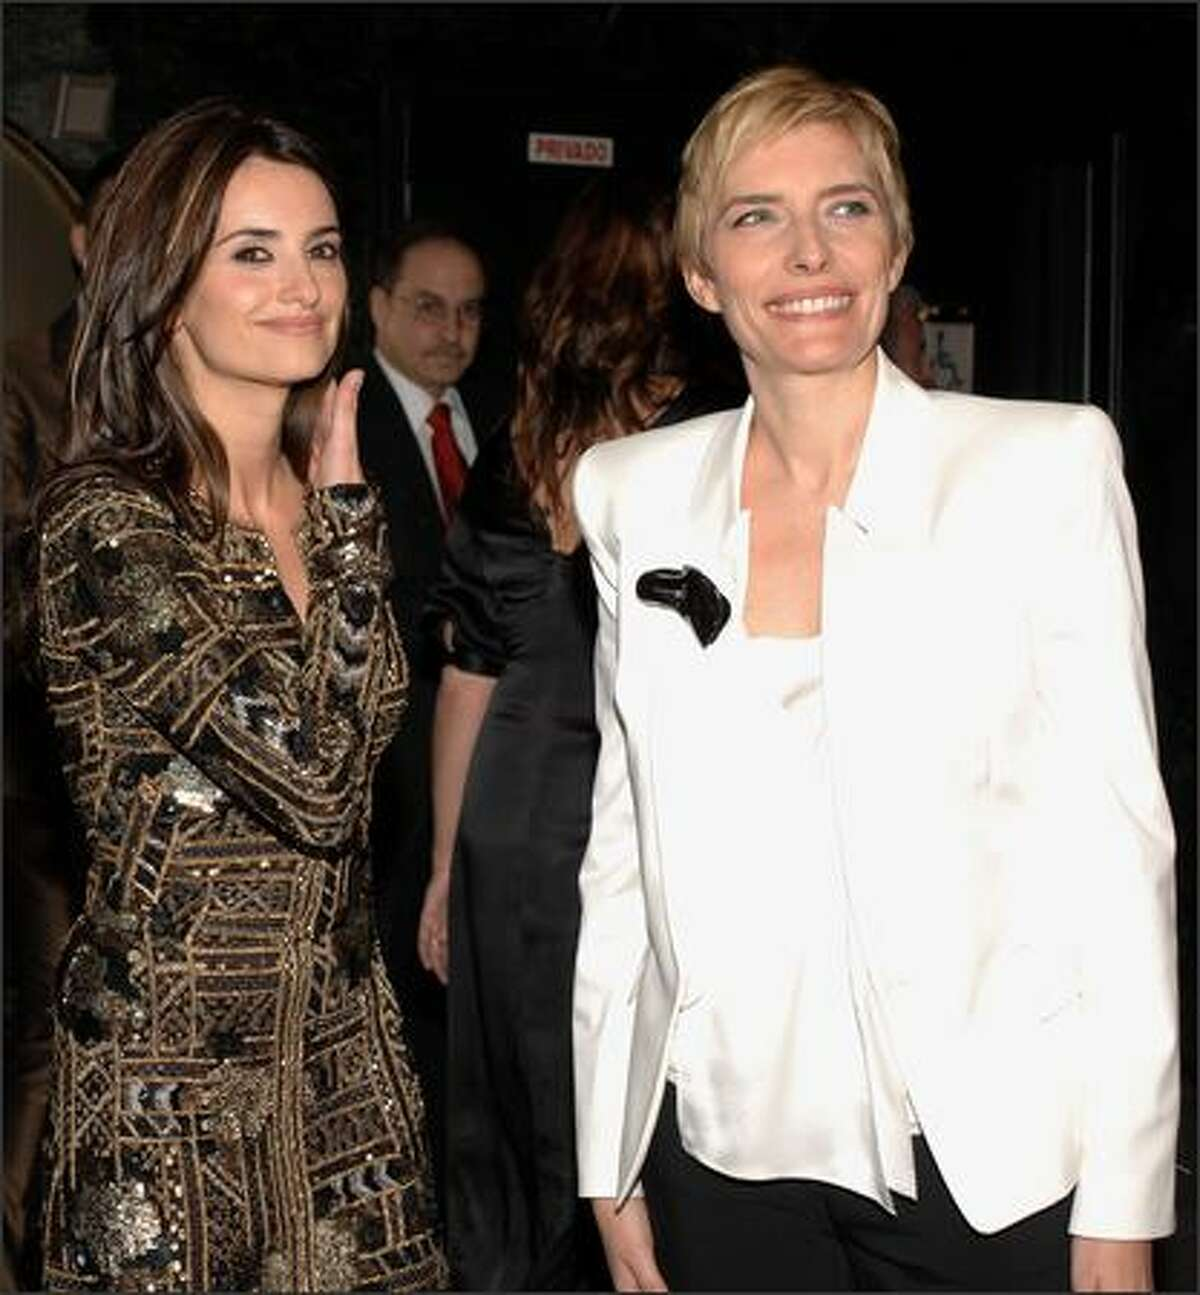 Atress Penelope Cruz (L) and Spanish Prime Minister Jose Luis Rodriguez Zapatero?s wife, Sonsoles Espinosa (R) attend the premiere of